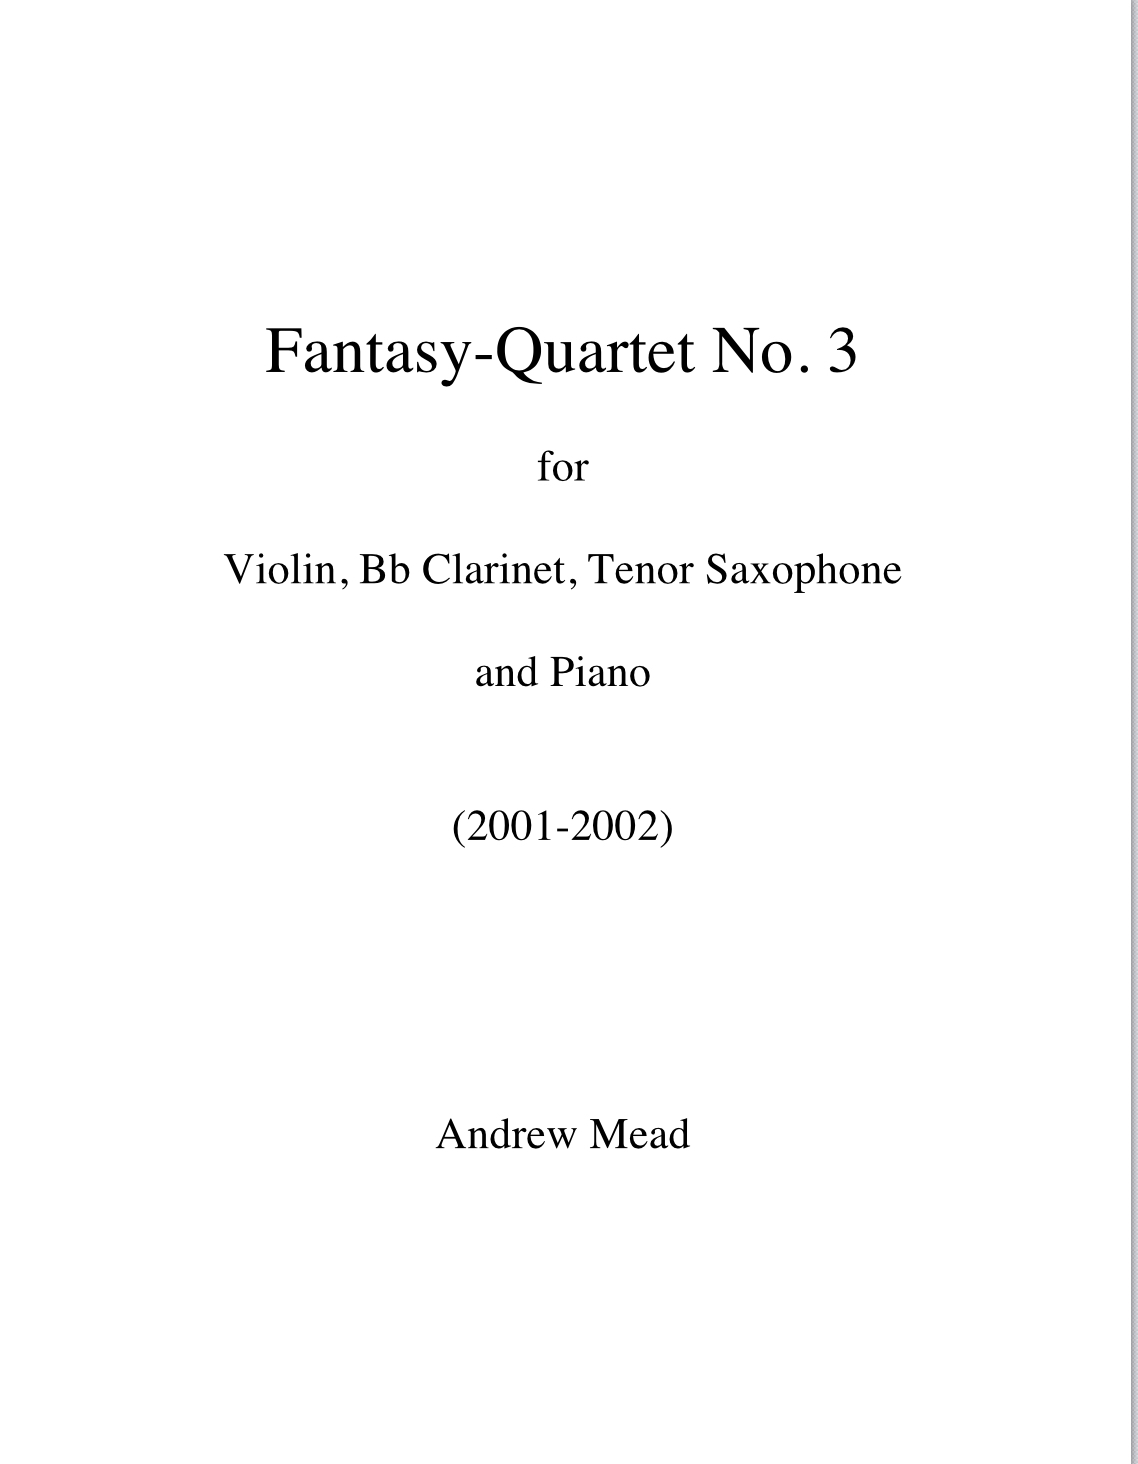 Fantasy Quartet No. 3 by Andrew Mead